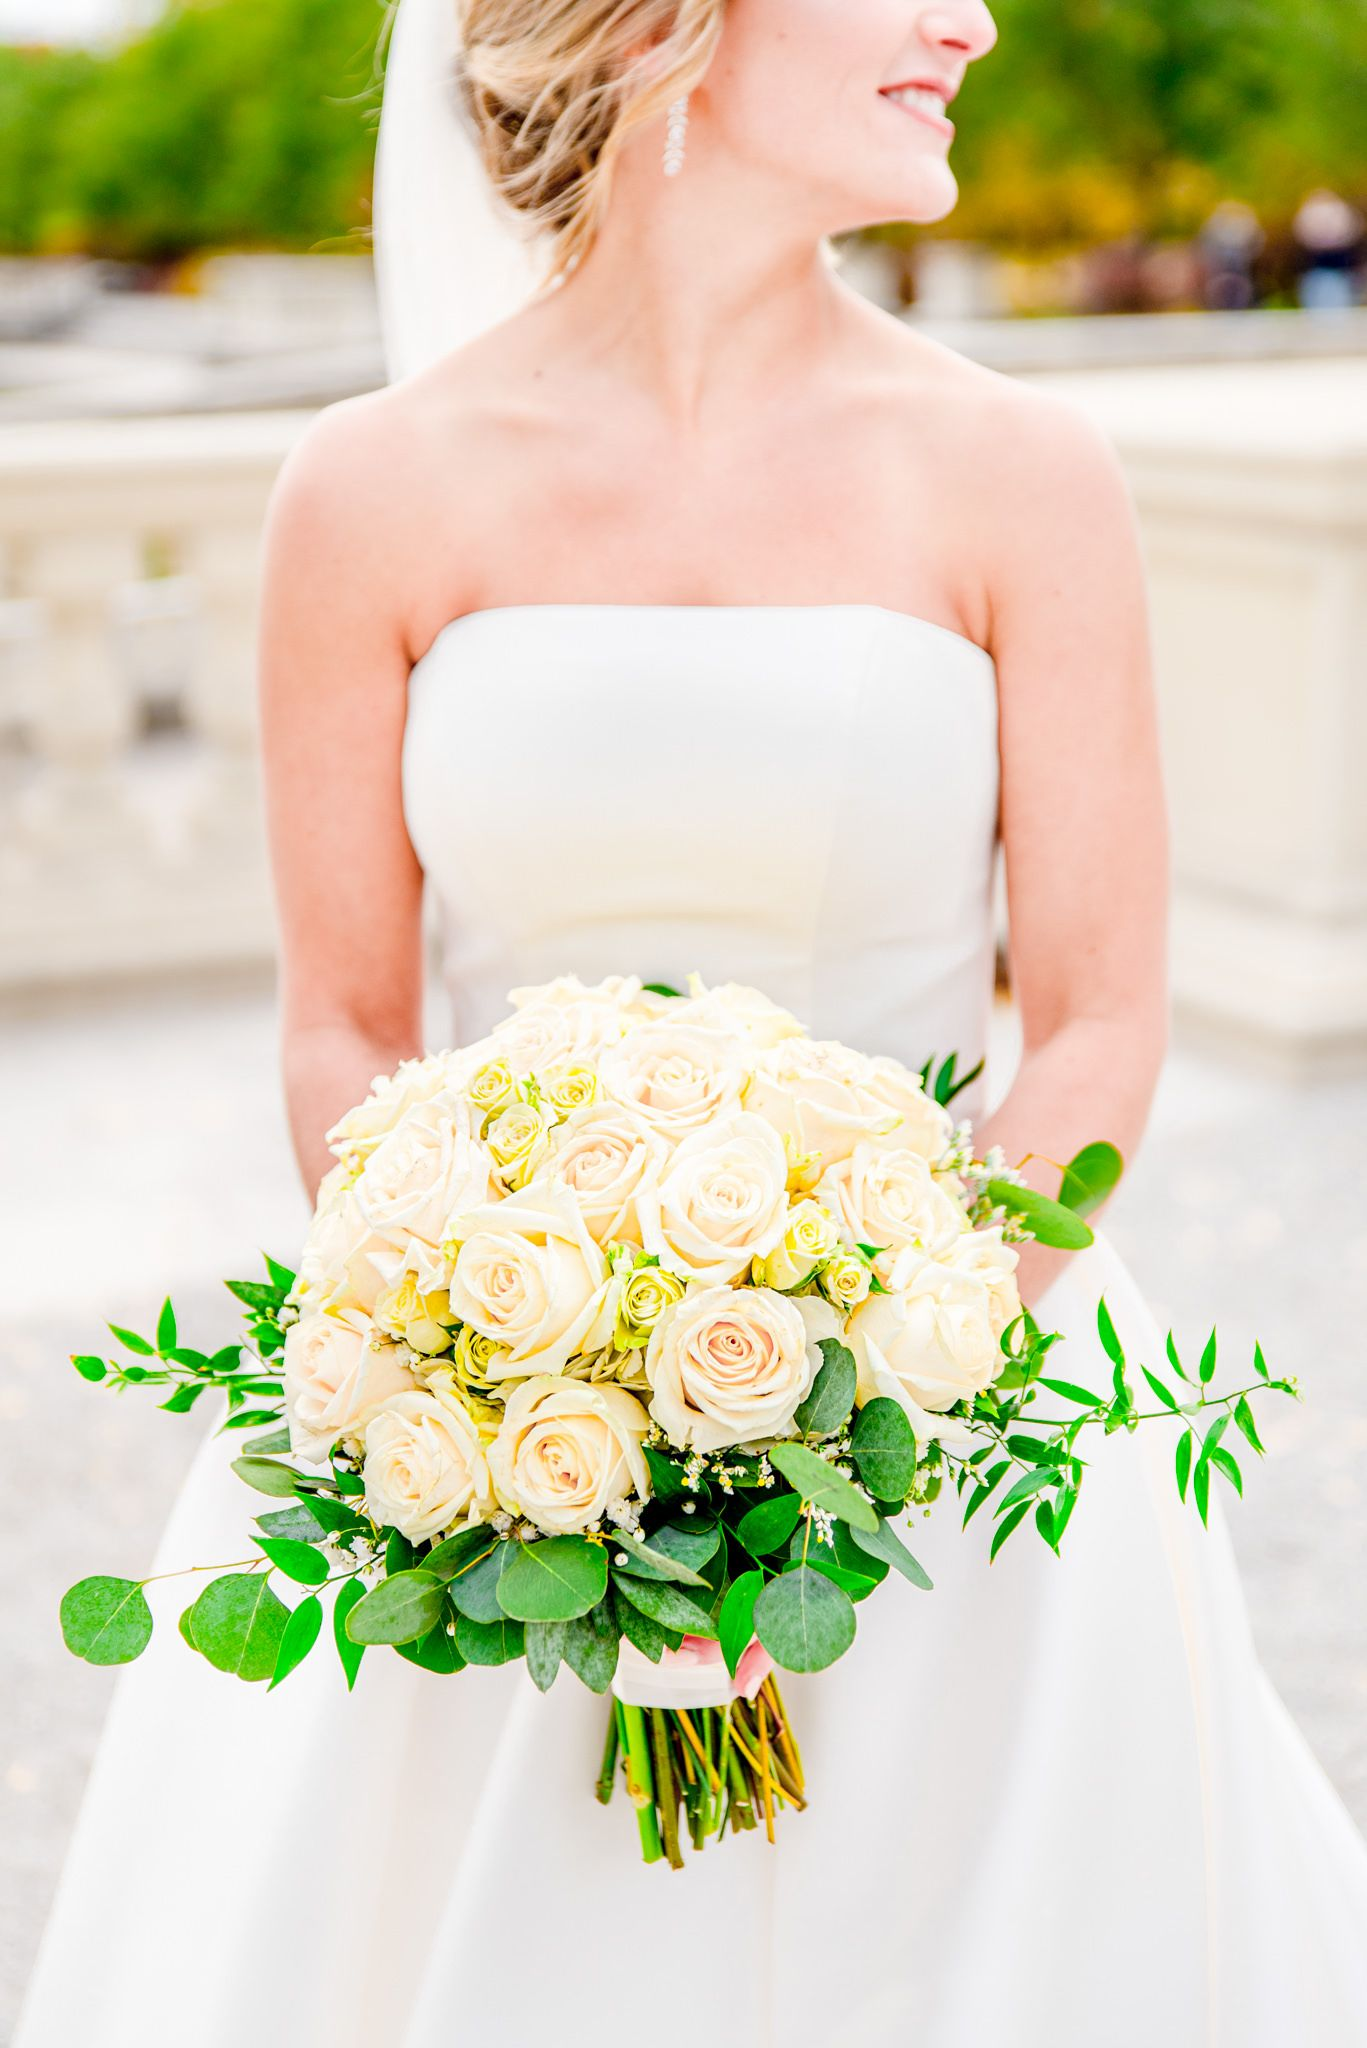 bride in strapless wedding dress holding white and green bouquet, looking to the side